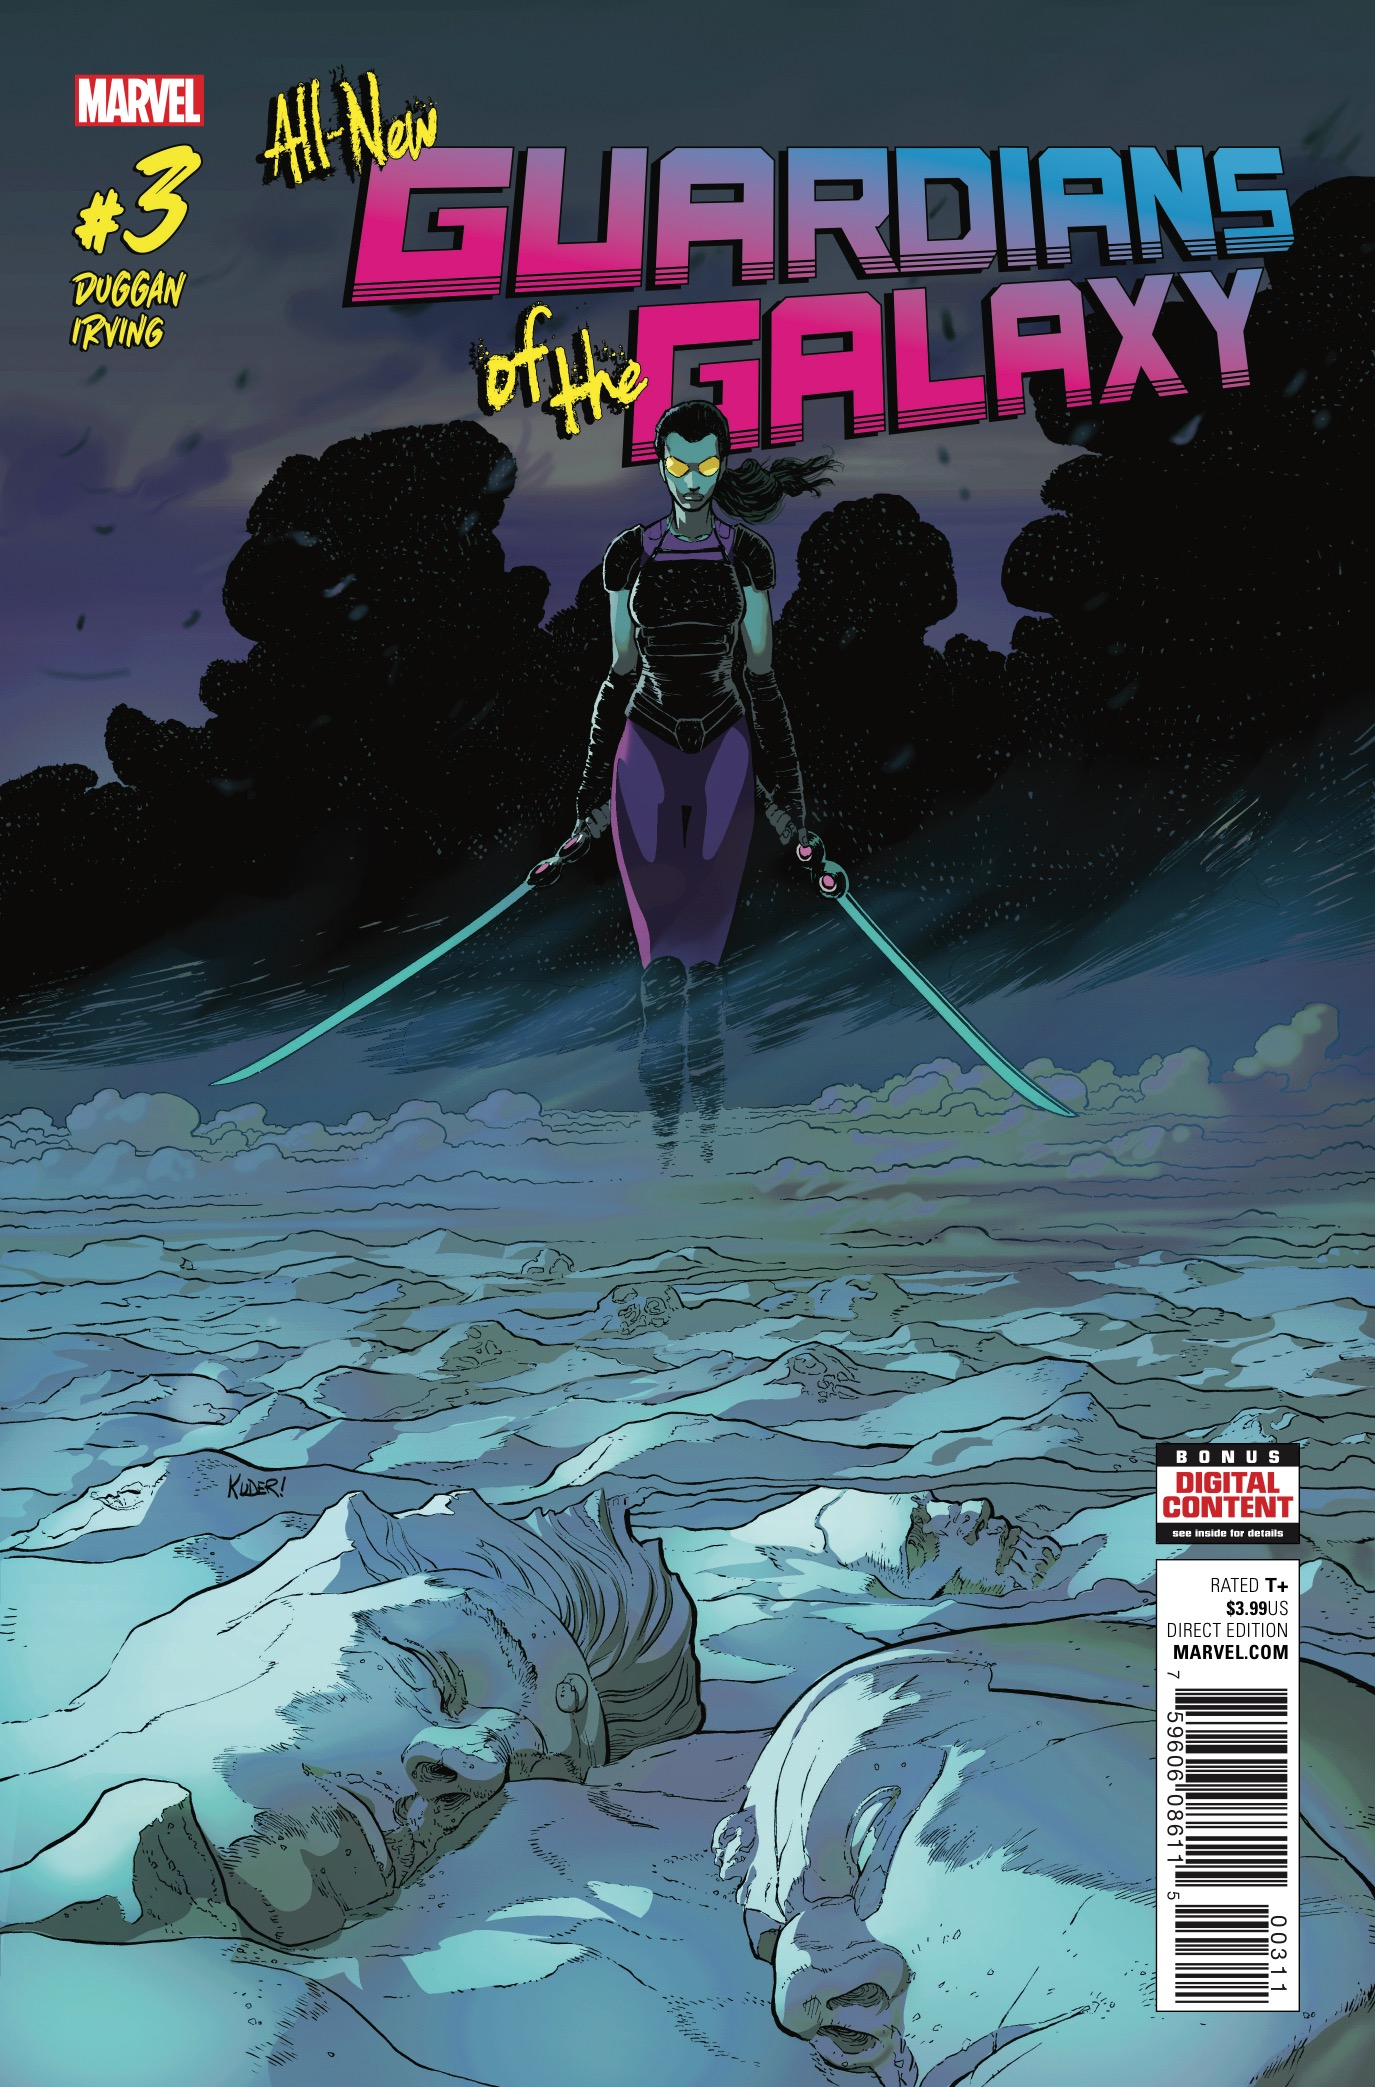 Part of the plan for All-New Guardians of the Galaxy all along was to stagger the main story so Aaron Kuder could continue to draw every part of the story arc, but also deliver this series on a biweekly schedule. So what happens when he's not drawing the main story arc? Why, Gerry Duggan reveals the backstory for each of the heroes so we can find out how they got here. This week we get to learn why Gamora has been so ornery the last few issues and boy, is there a good reason!